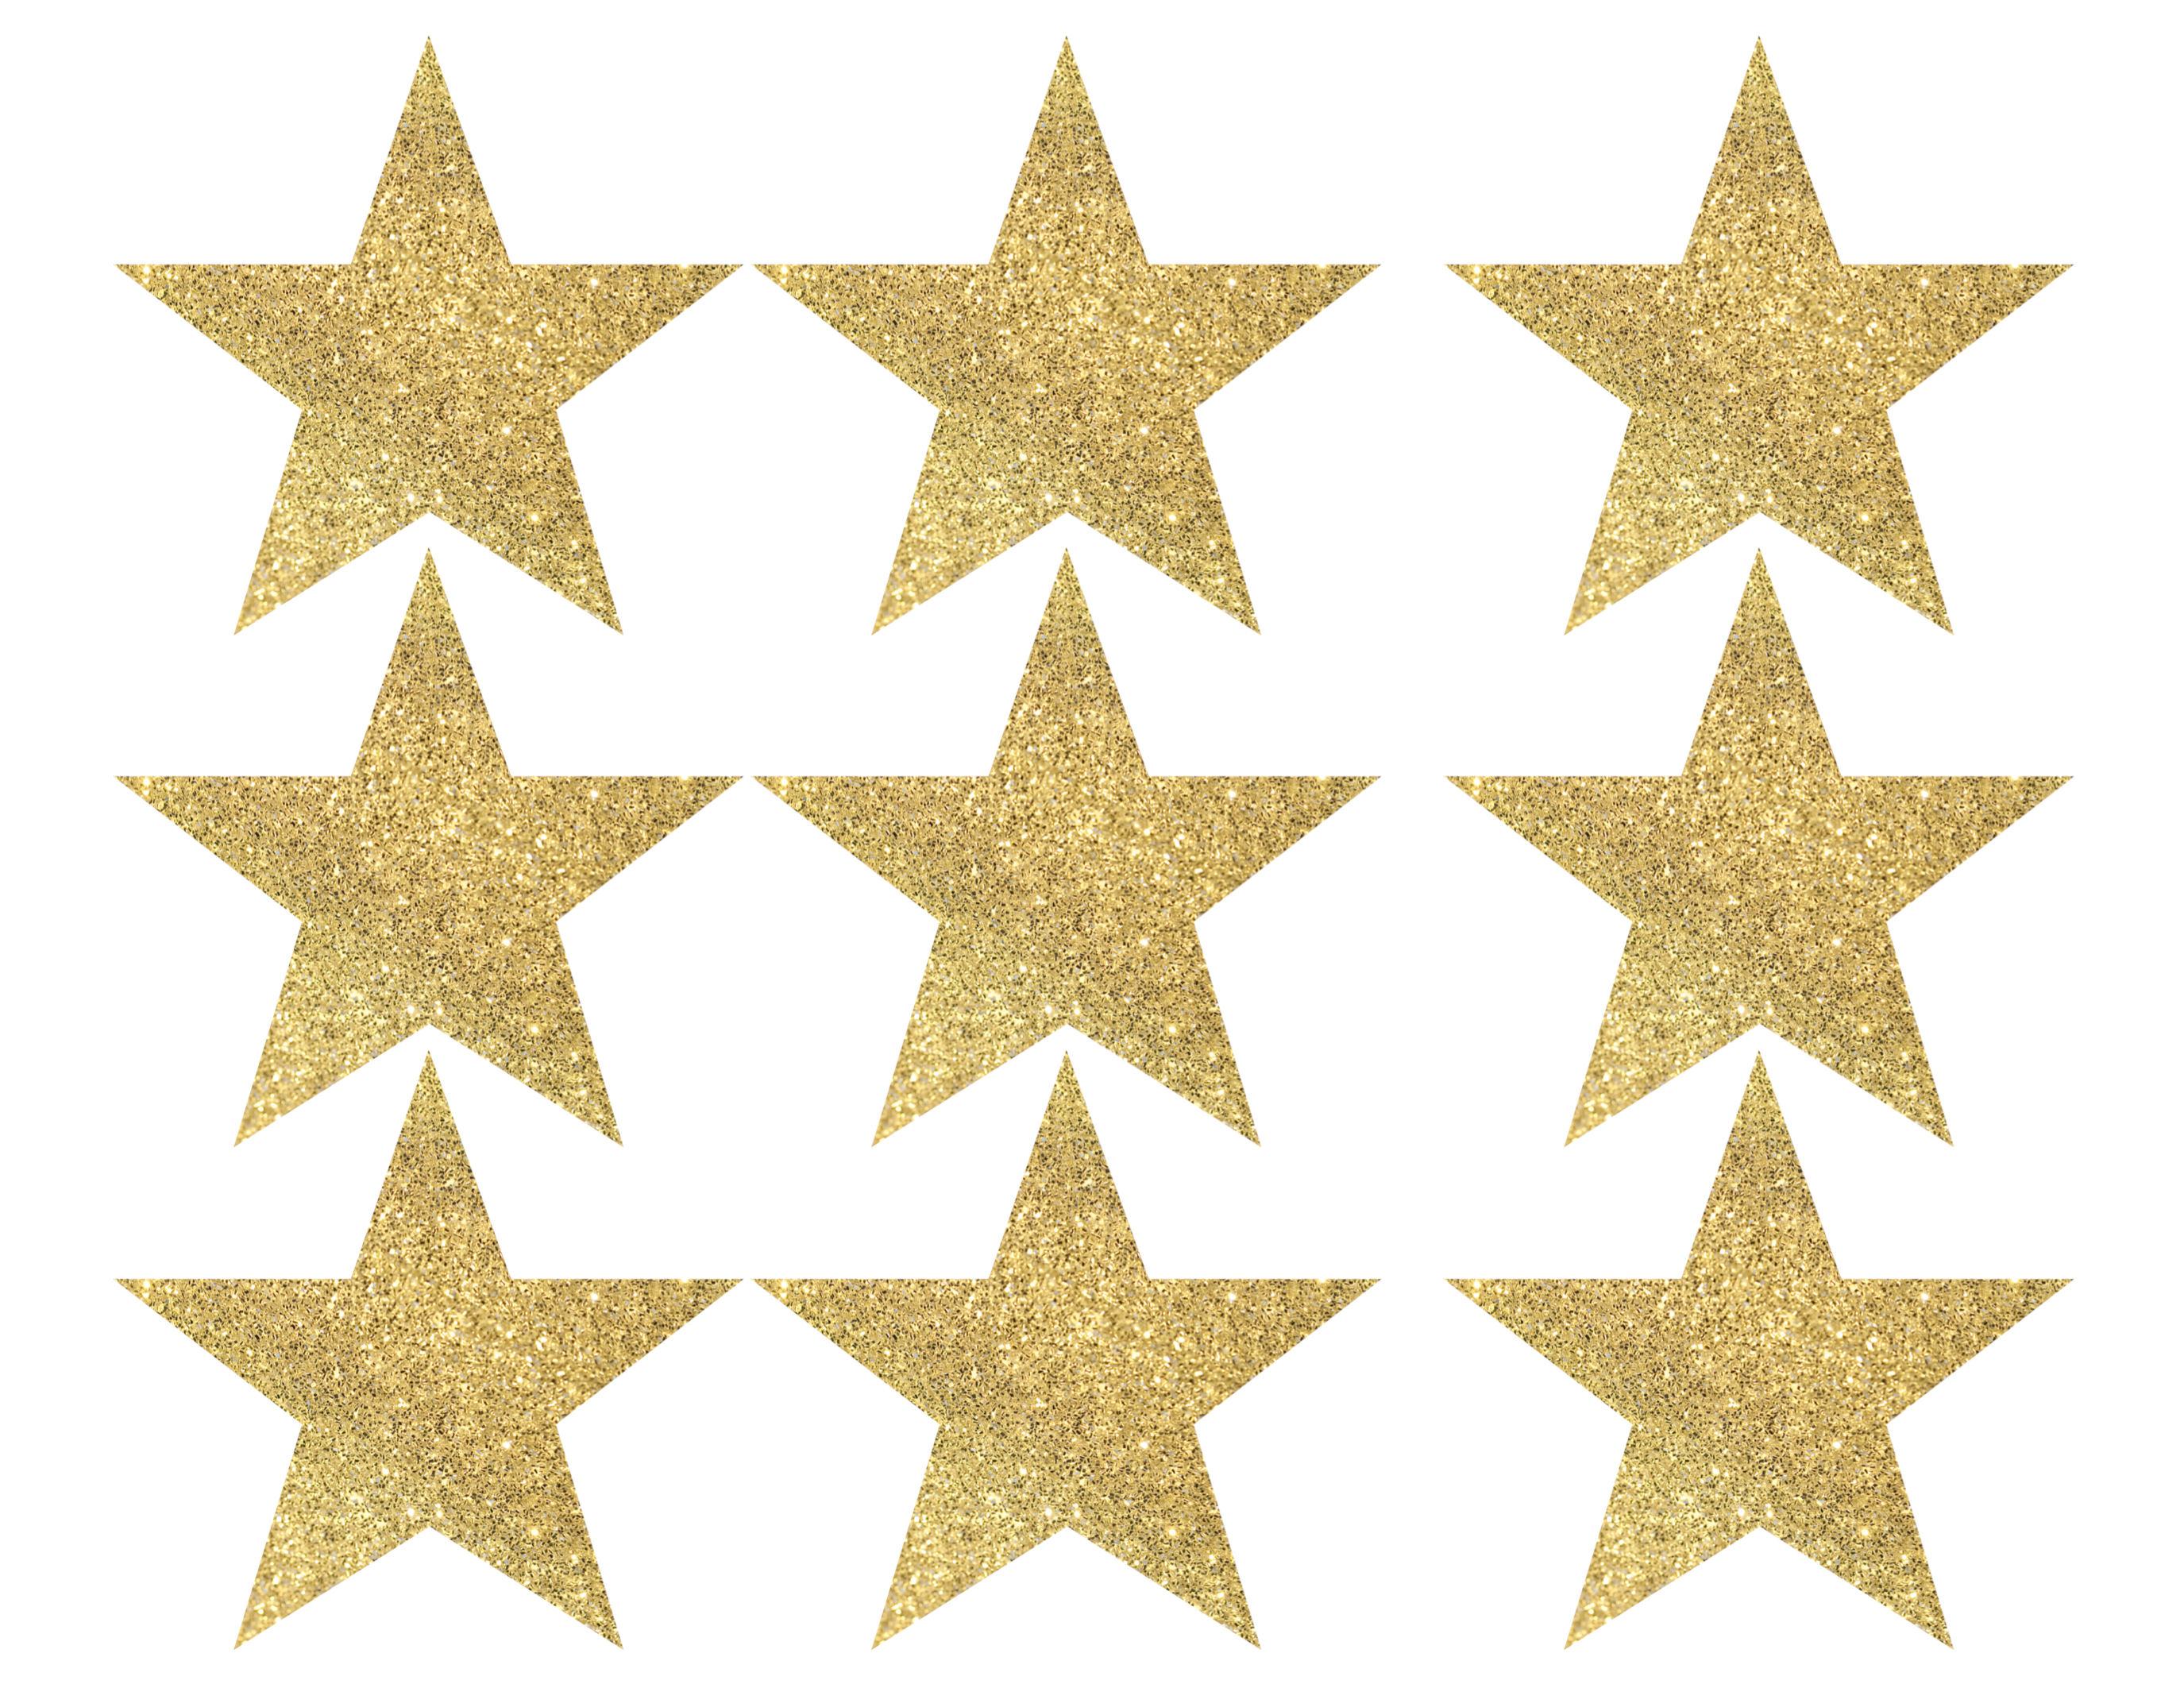 picture regarding Christmas Star Printable called Gold Star Banner Xmas Garland Printable - Paper Path